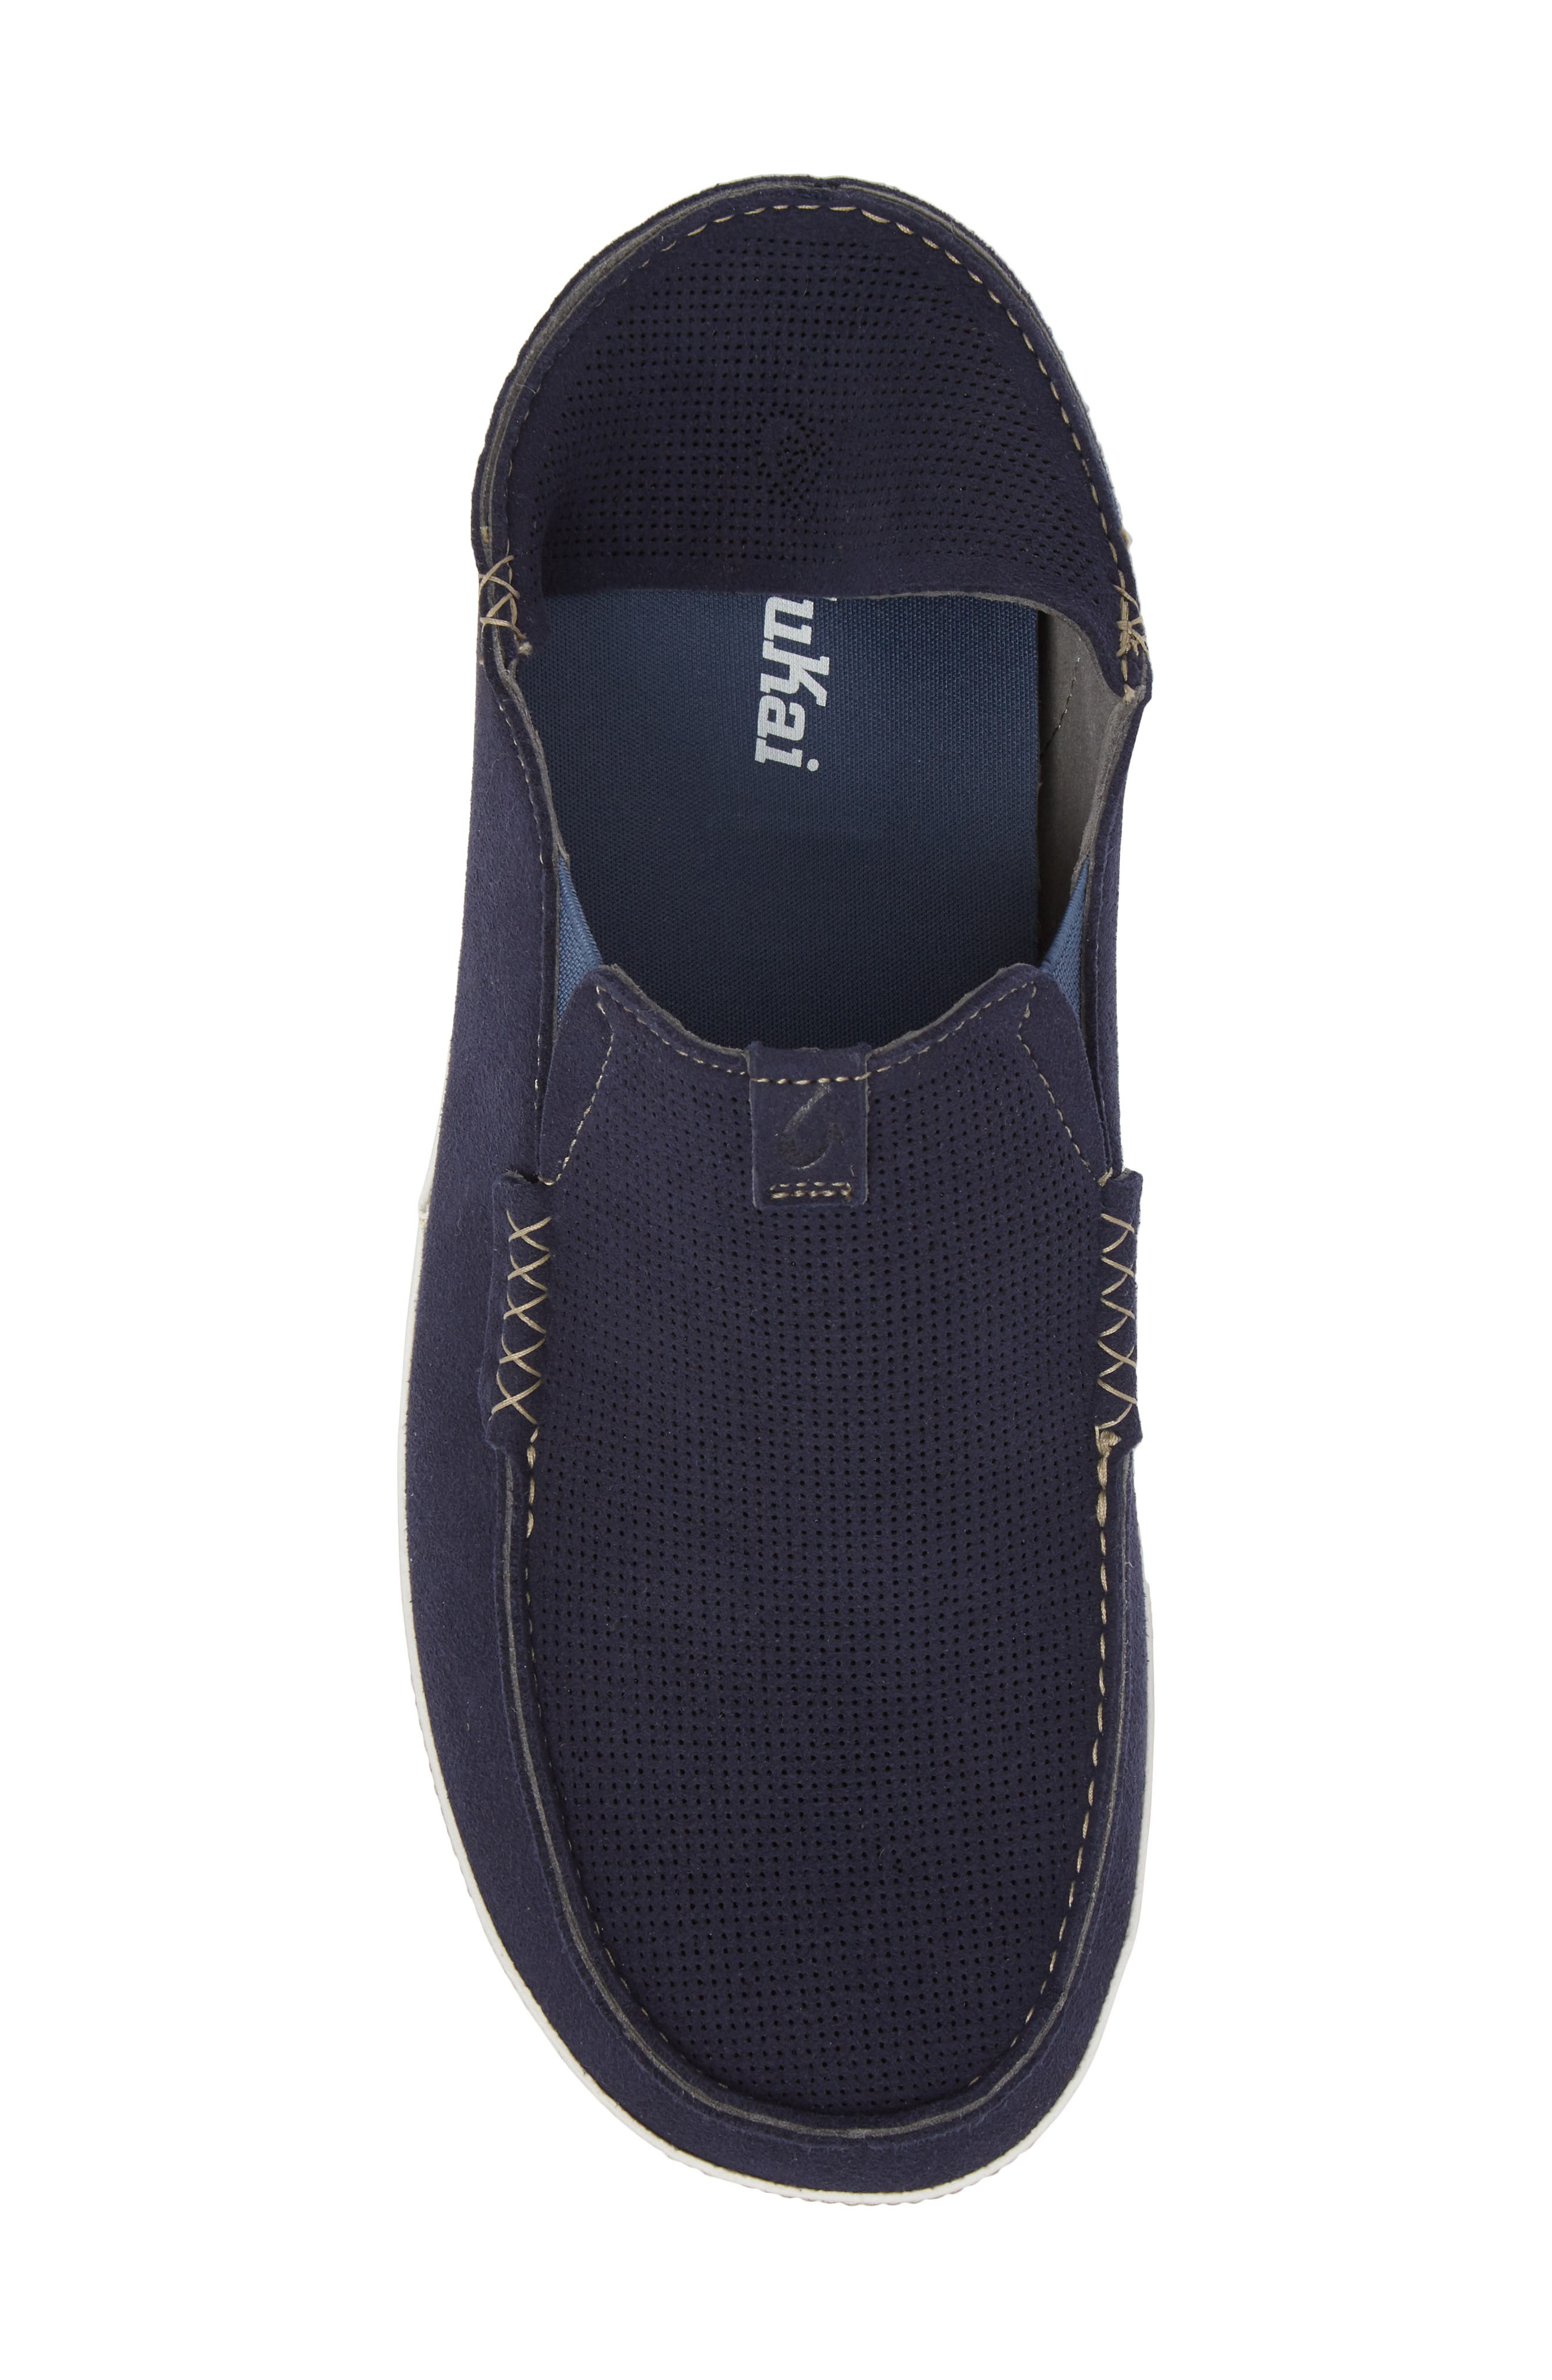 Kauwela Collapsible Slip-On,                             Alternate thumbnail 6, color,                             TRENCH BLUE/ OFF WHITE